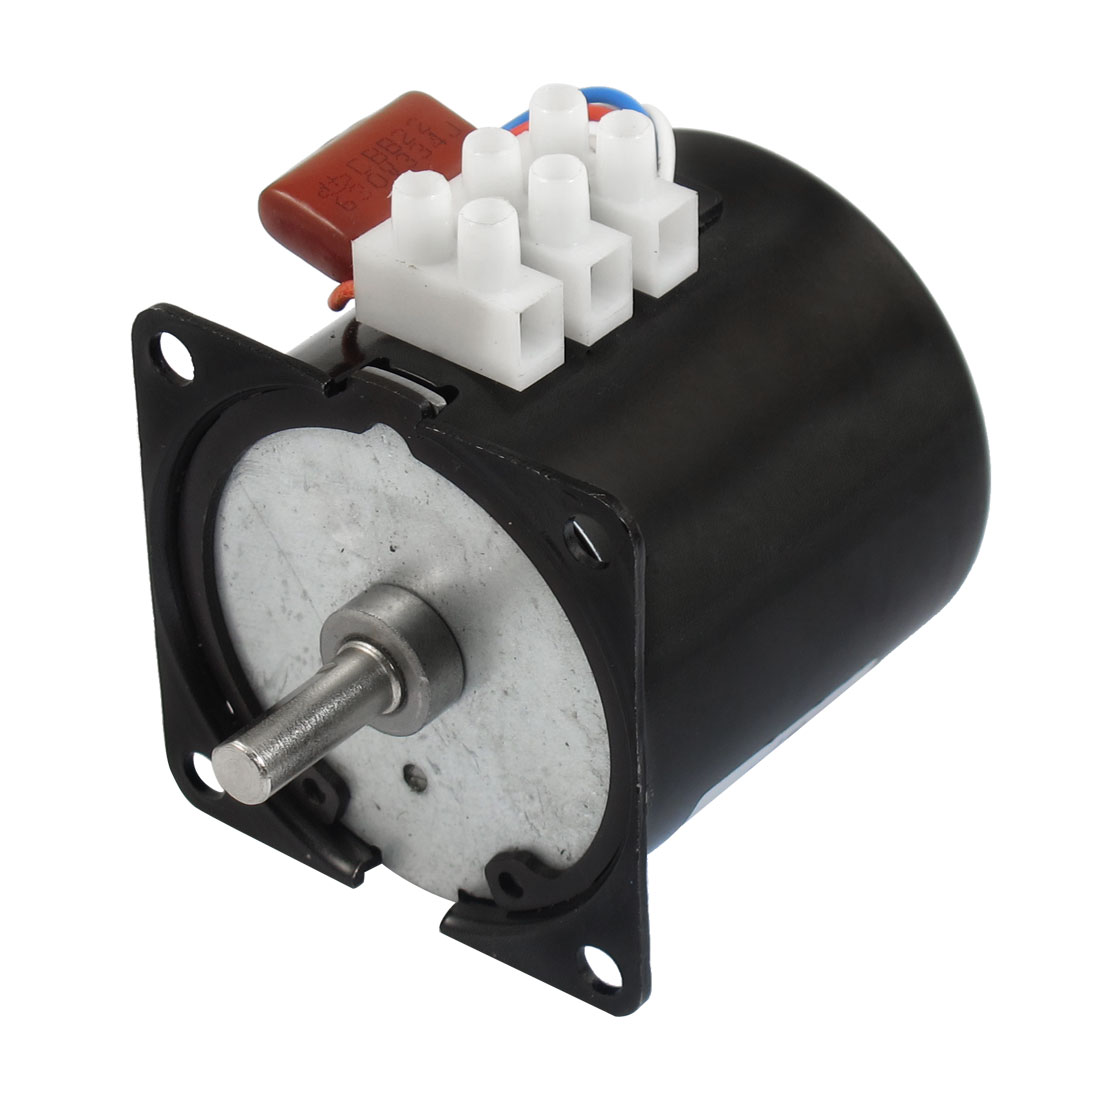 220VAC 60RPM Rotated Speed Synchronous Reduction Gear Box Motor 14W